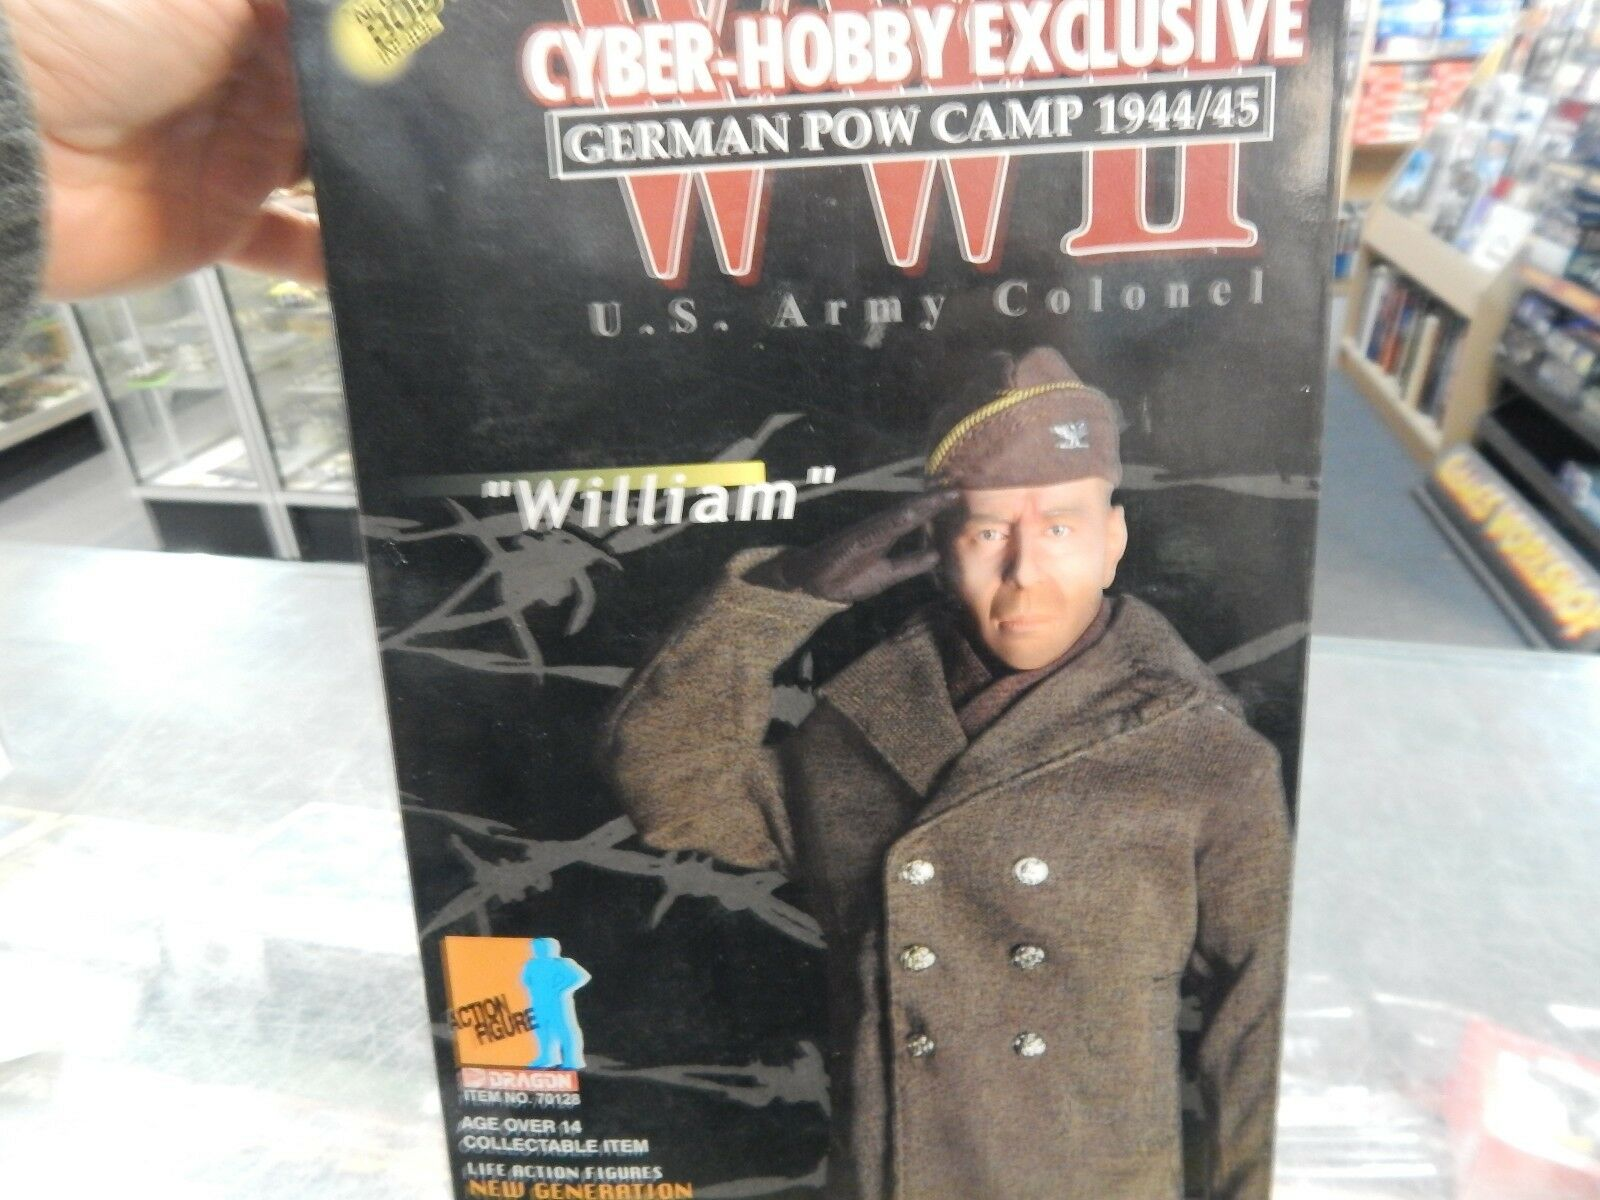 Dragon Cyber Hobby Exclusive 12  action figure 'William'